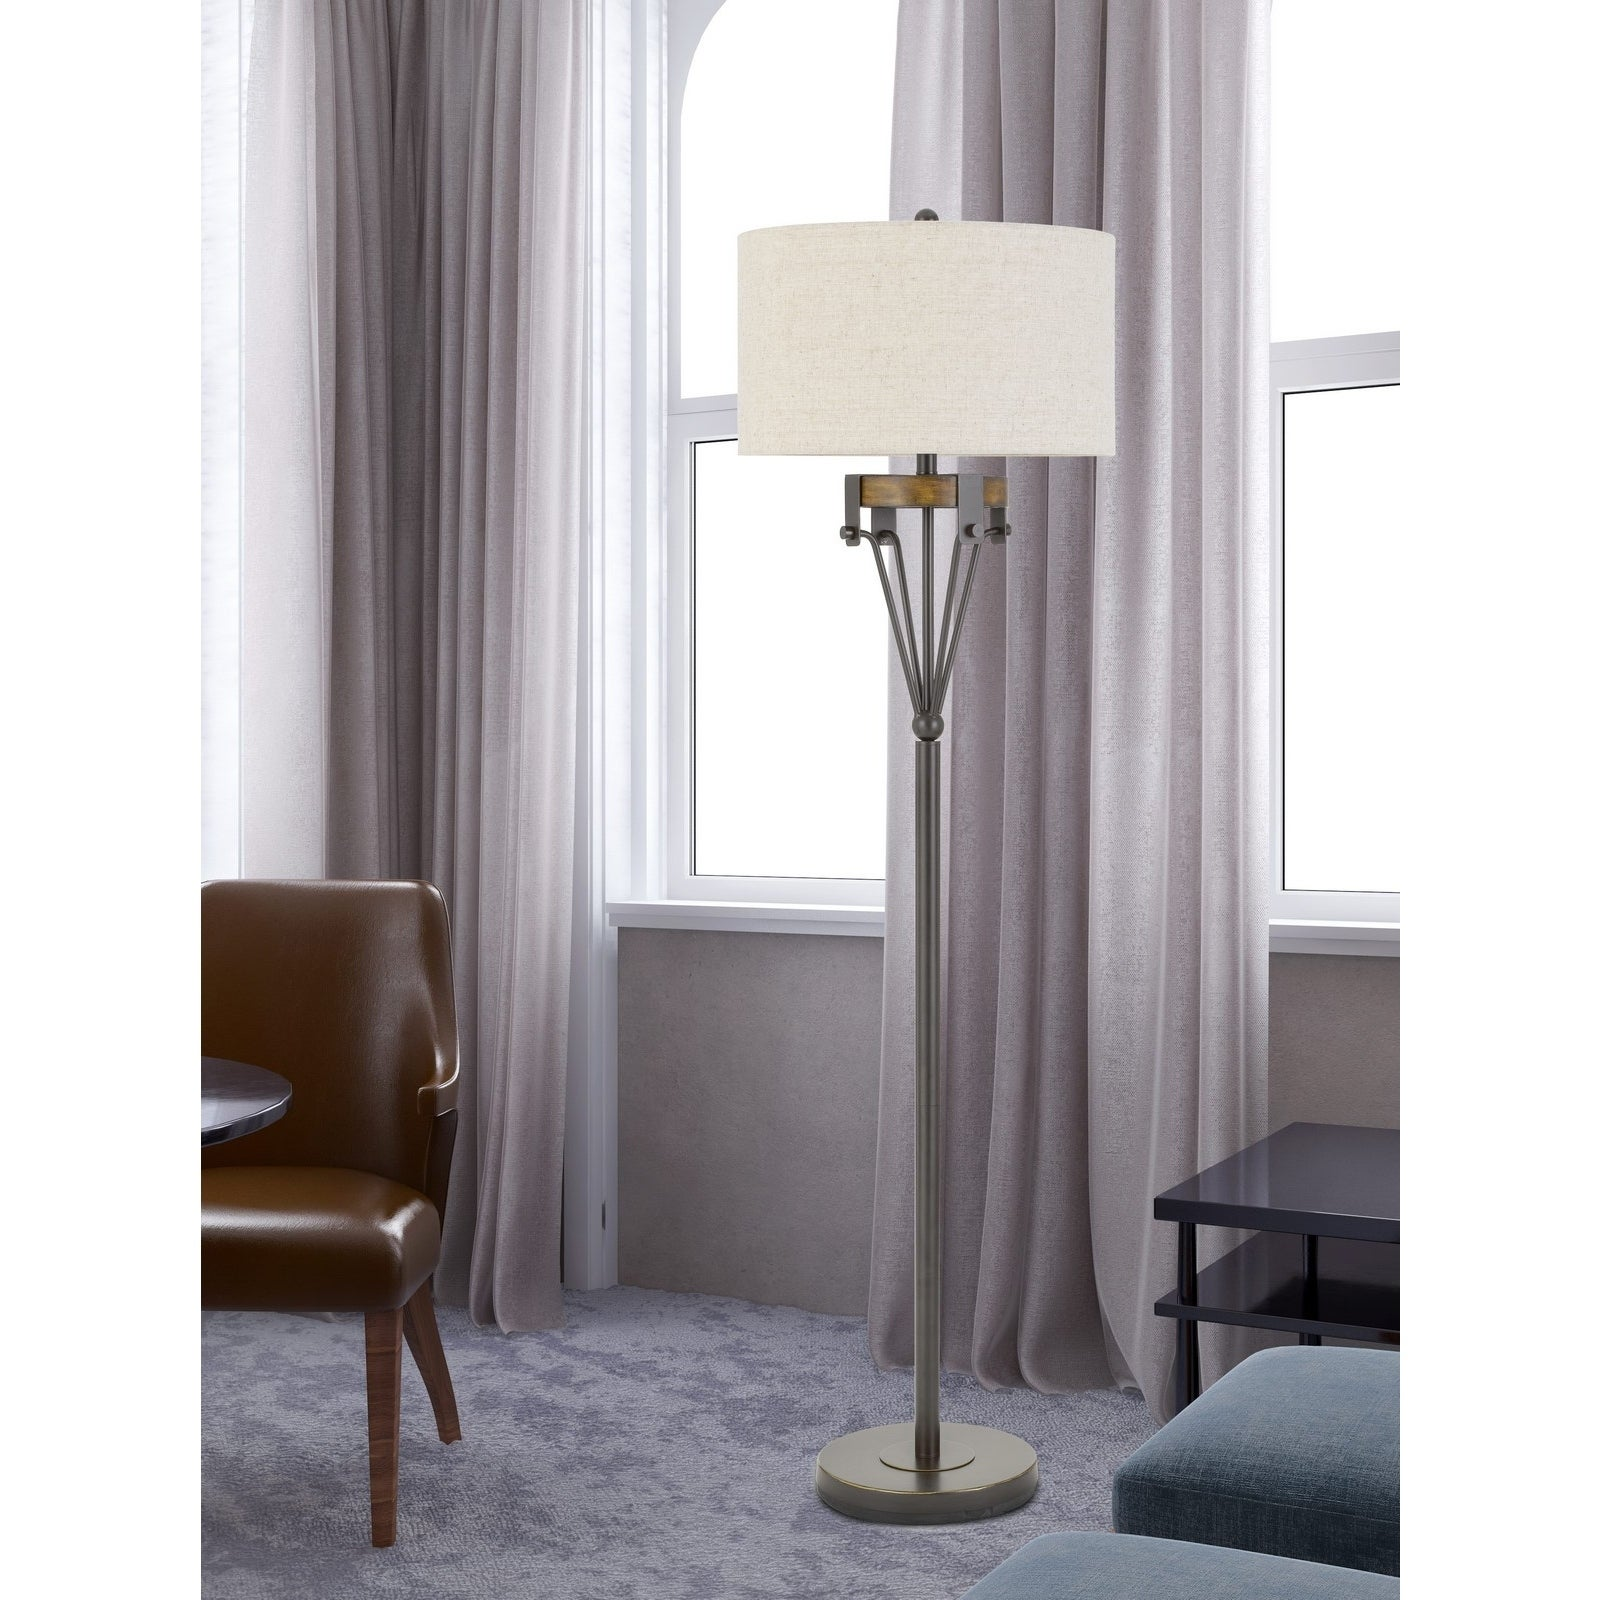 Shop Kirkcaldy Metal Floor LAmp - Overstock - 29905214